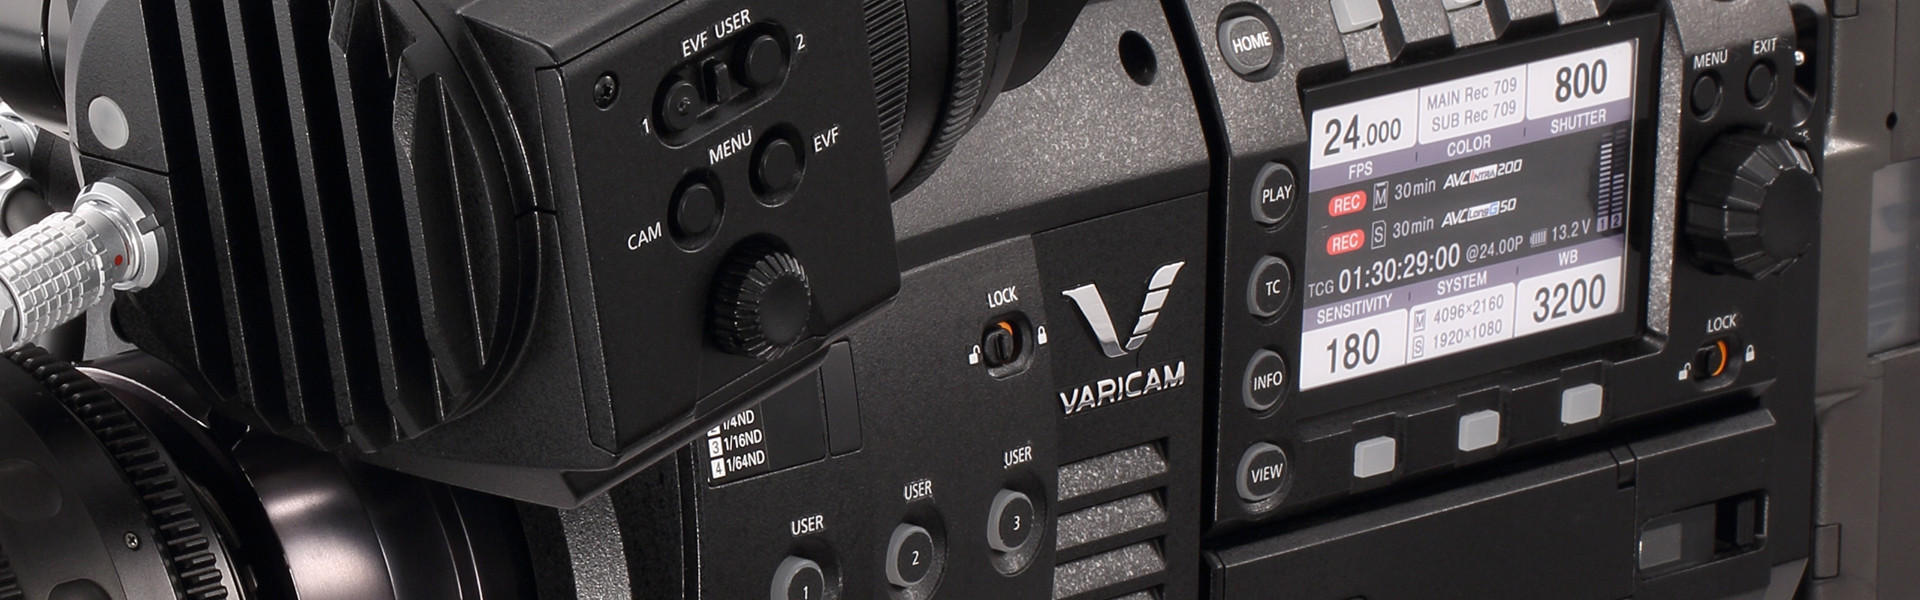 Header image for article Panasonic Announces New VariCam 35 and VariCam HS